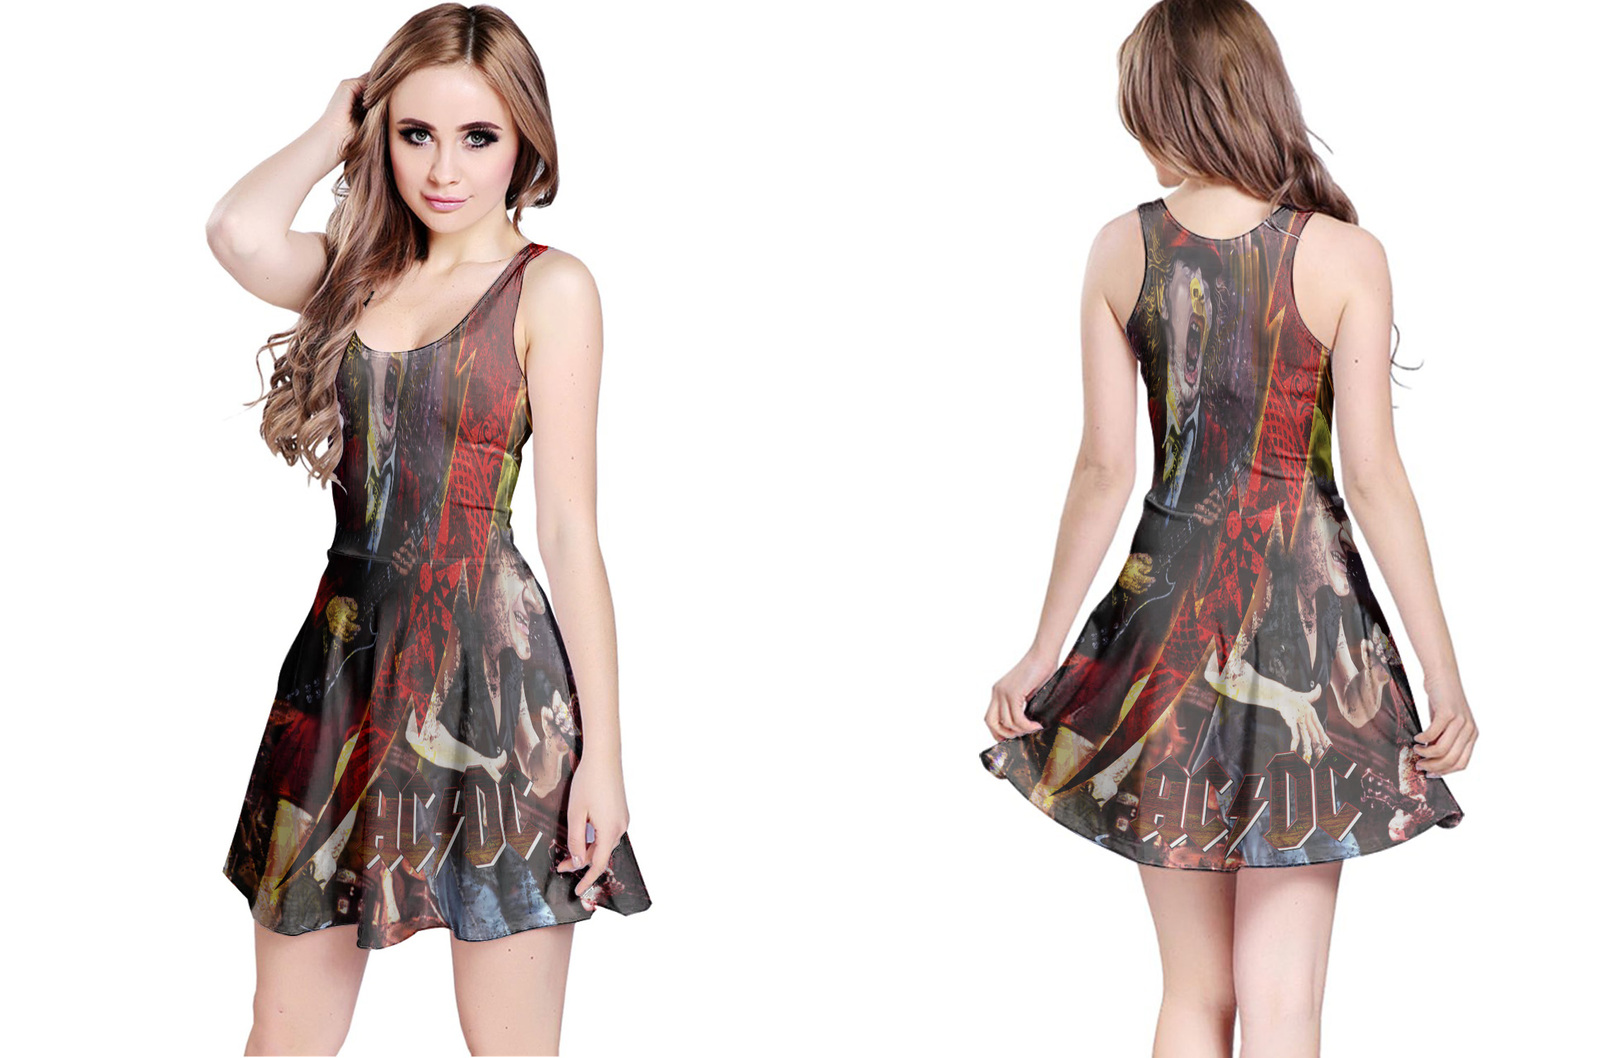 Primary image for ACDC Collection #1 Women's Reversible Dress